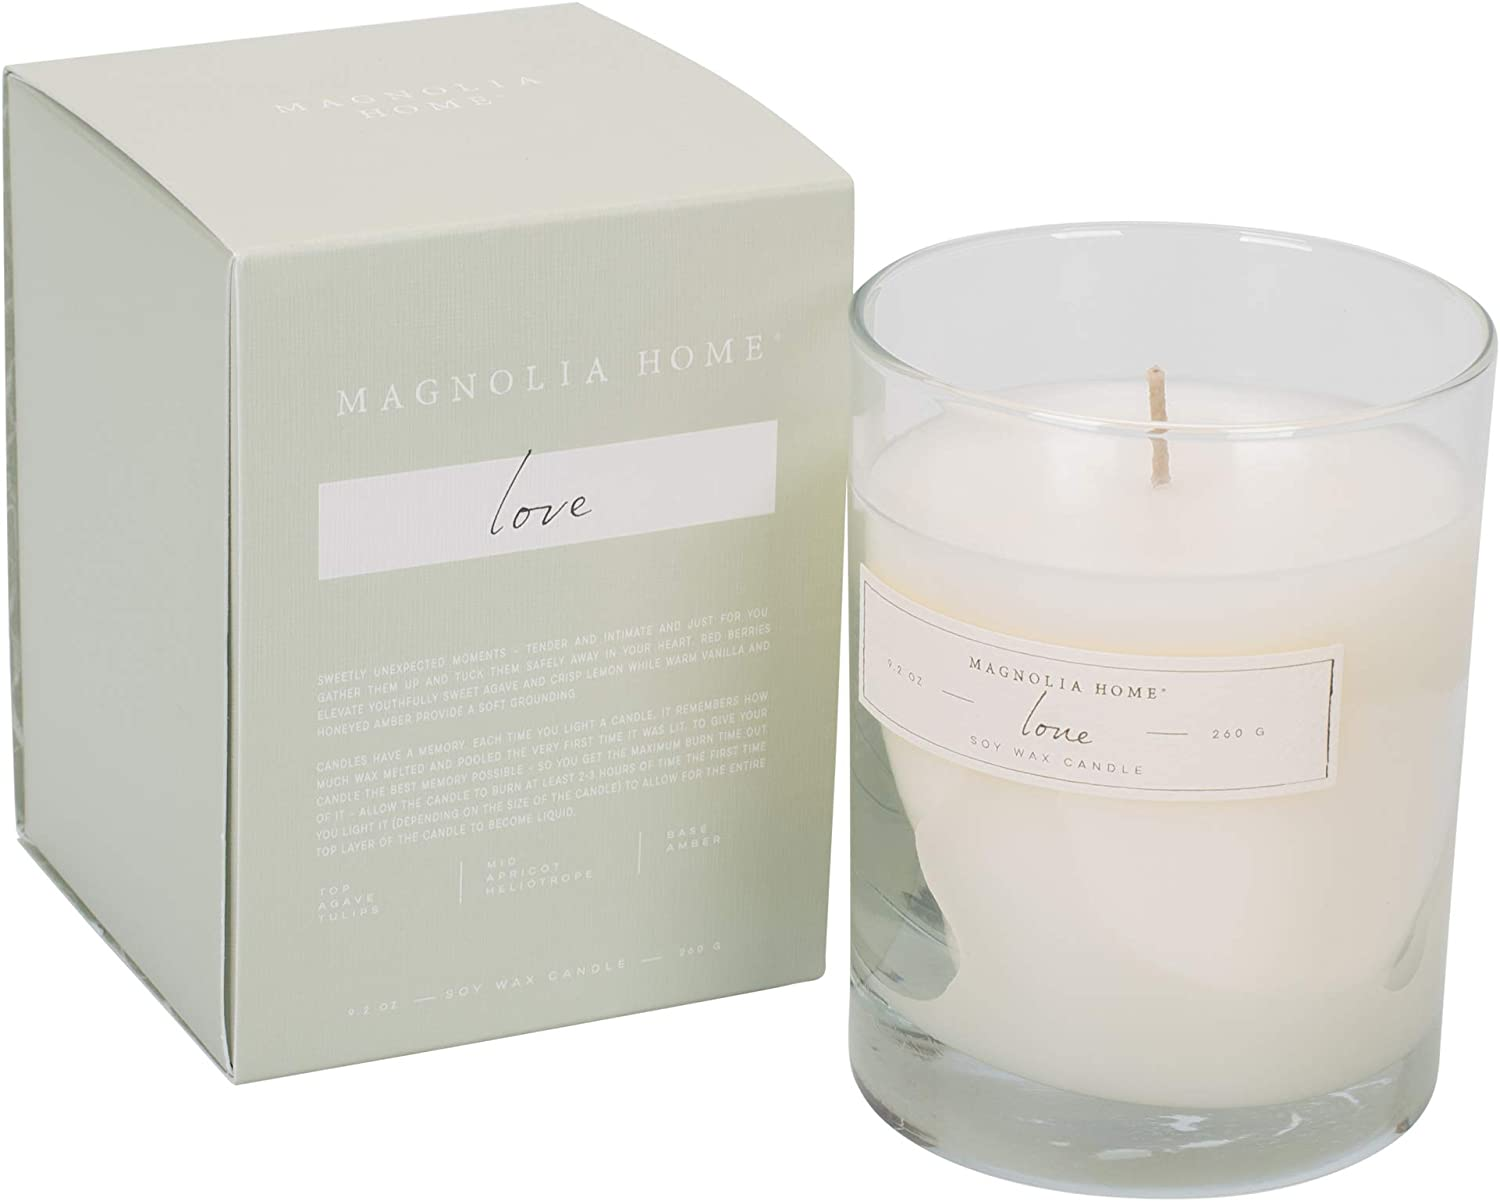 Magnolia Home Love Scented 9.2 oz Soy Wax Boxed Glass Candle by Joanna Gaines - Illume Pack of 2